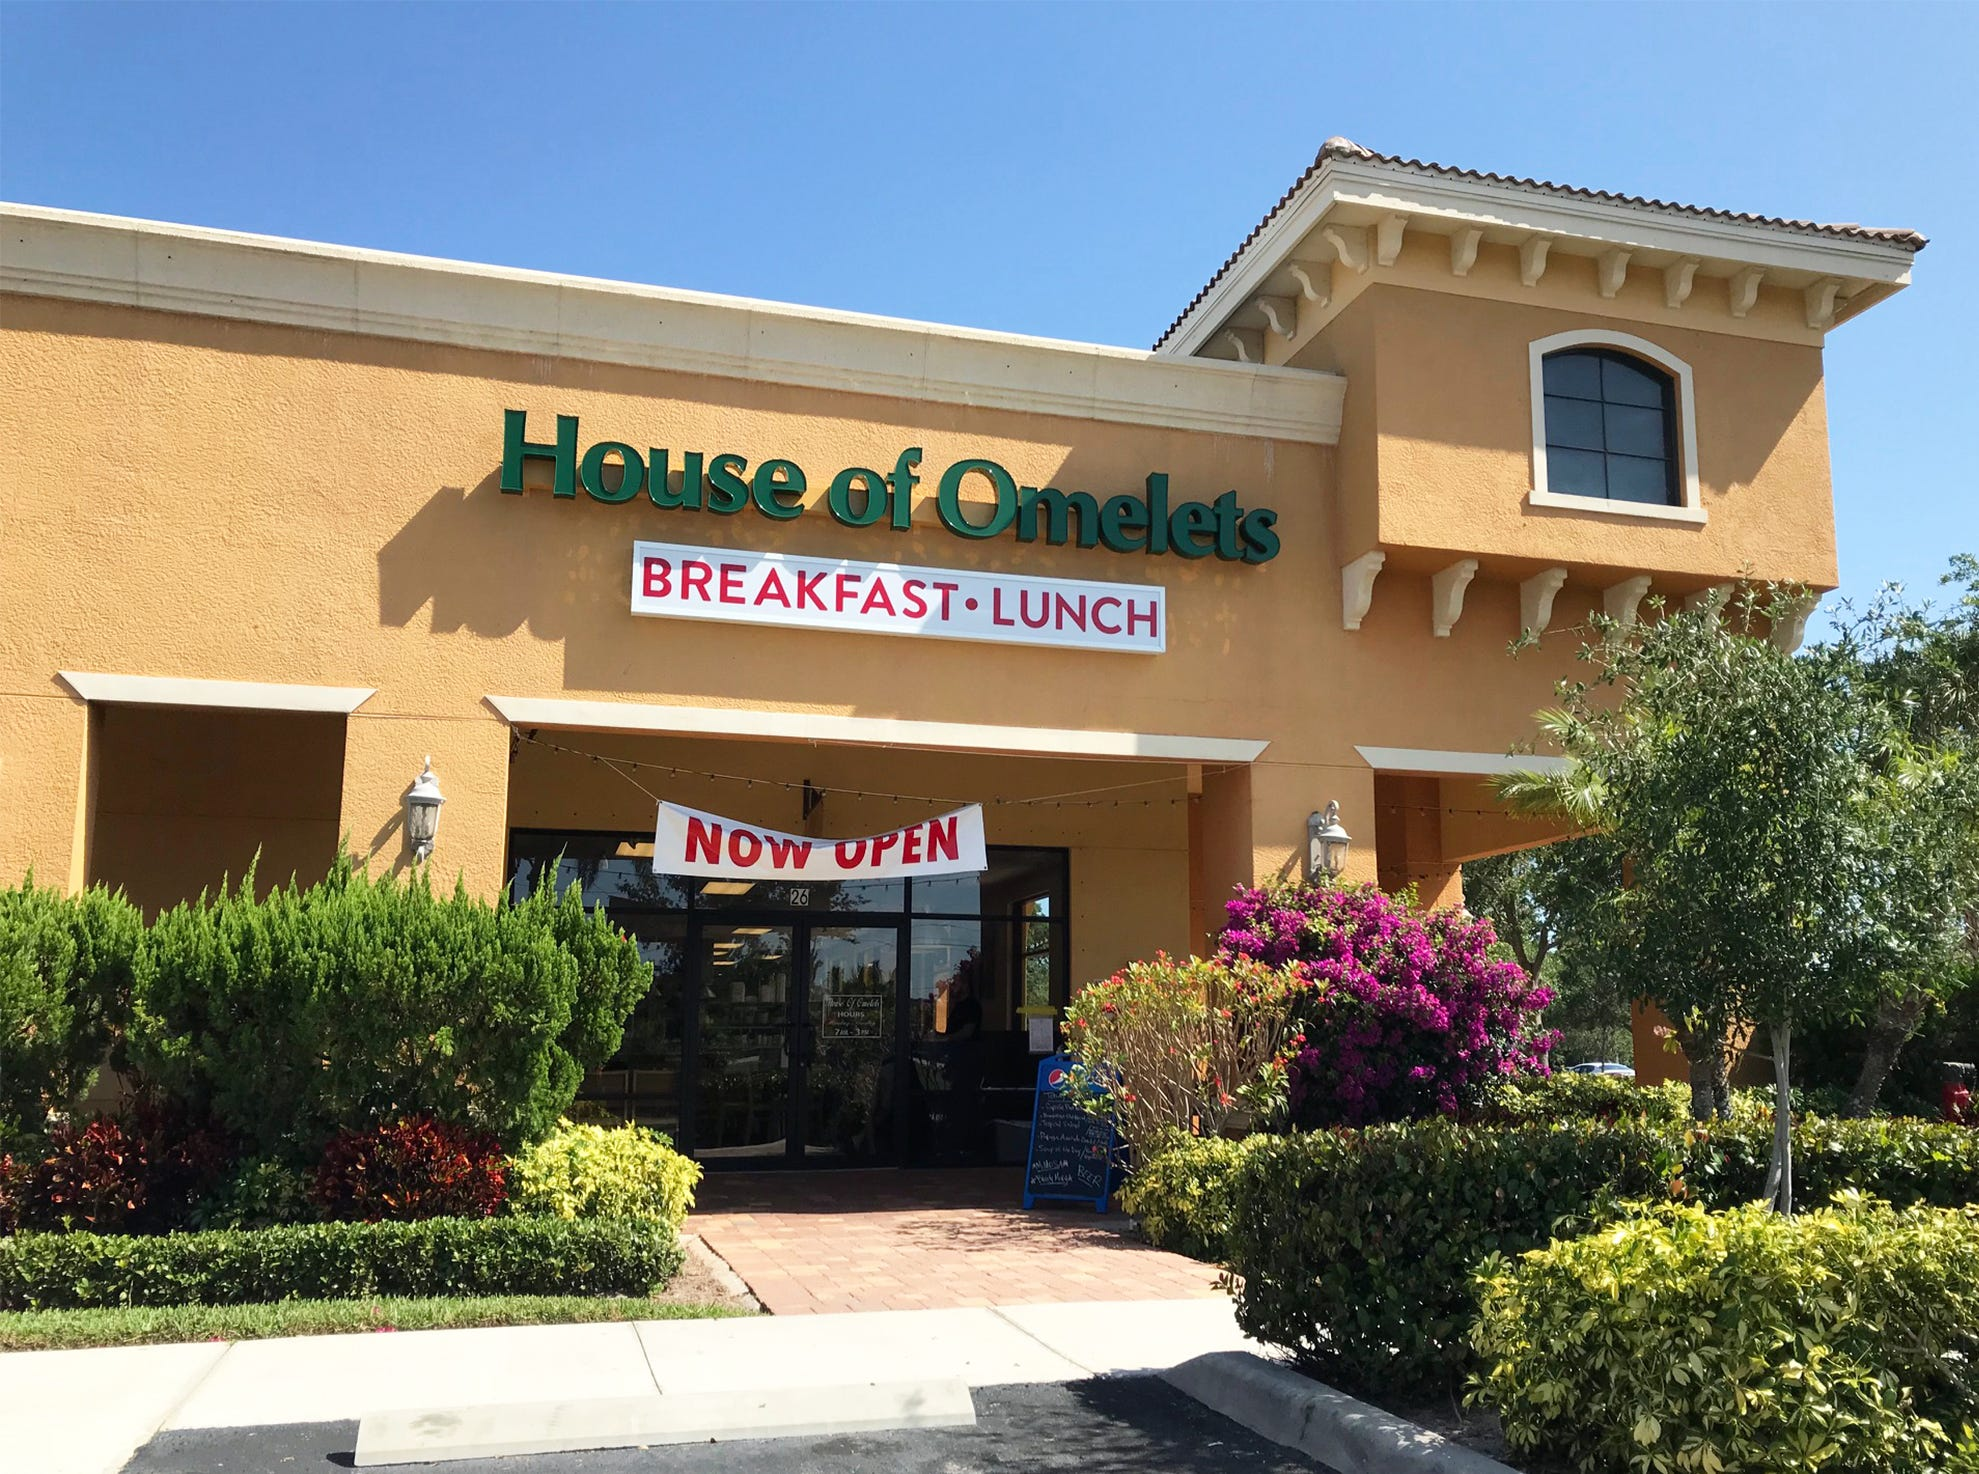 House of Omelets opened for breakfast and lunch in February 2018 in the former locations of Charlie's and Cider Press Cafe in Pipers Crossing along Immokalee Road in North Naples.